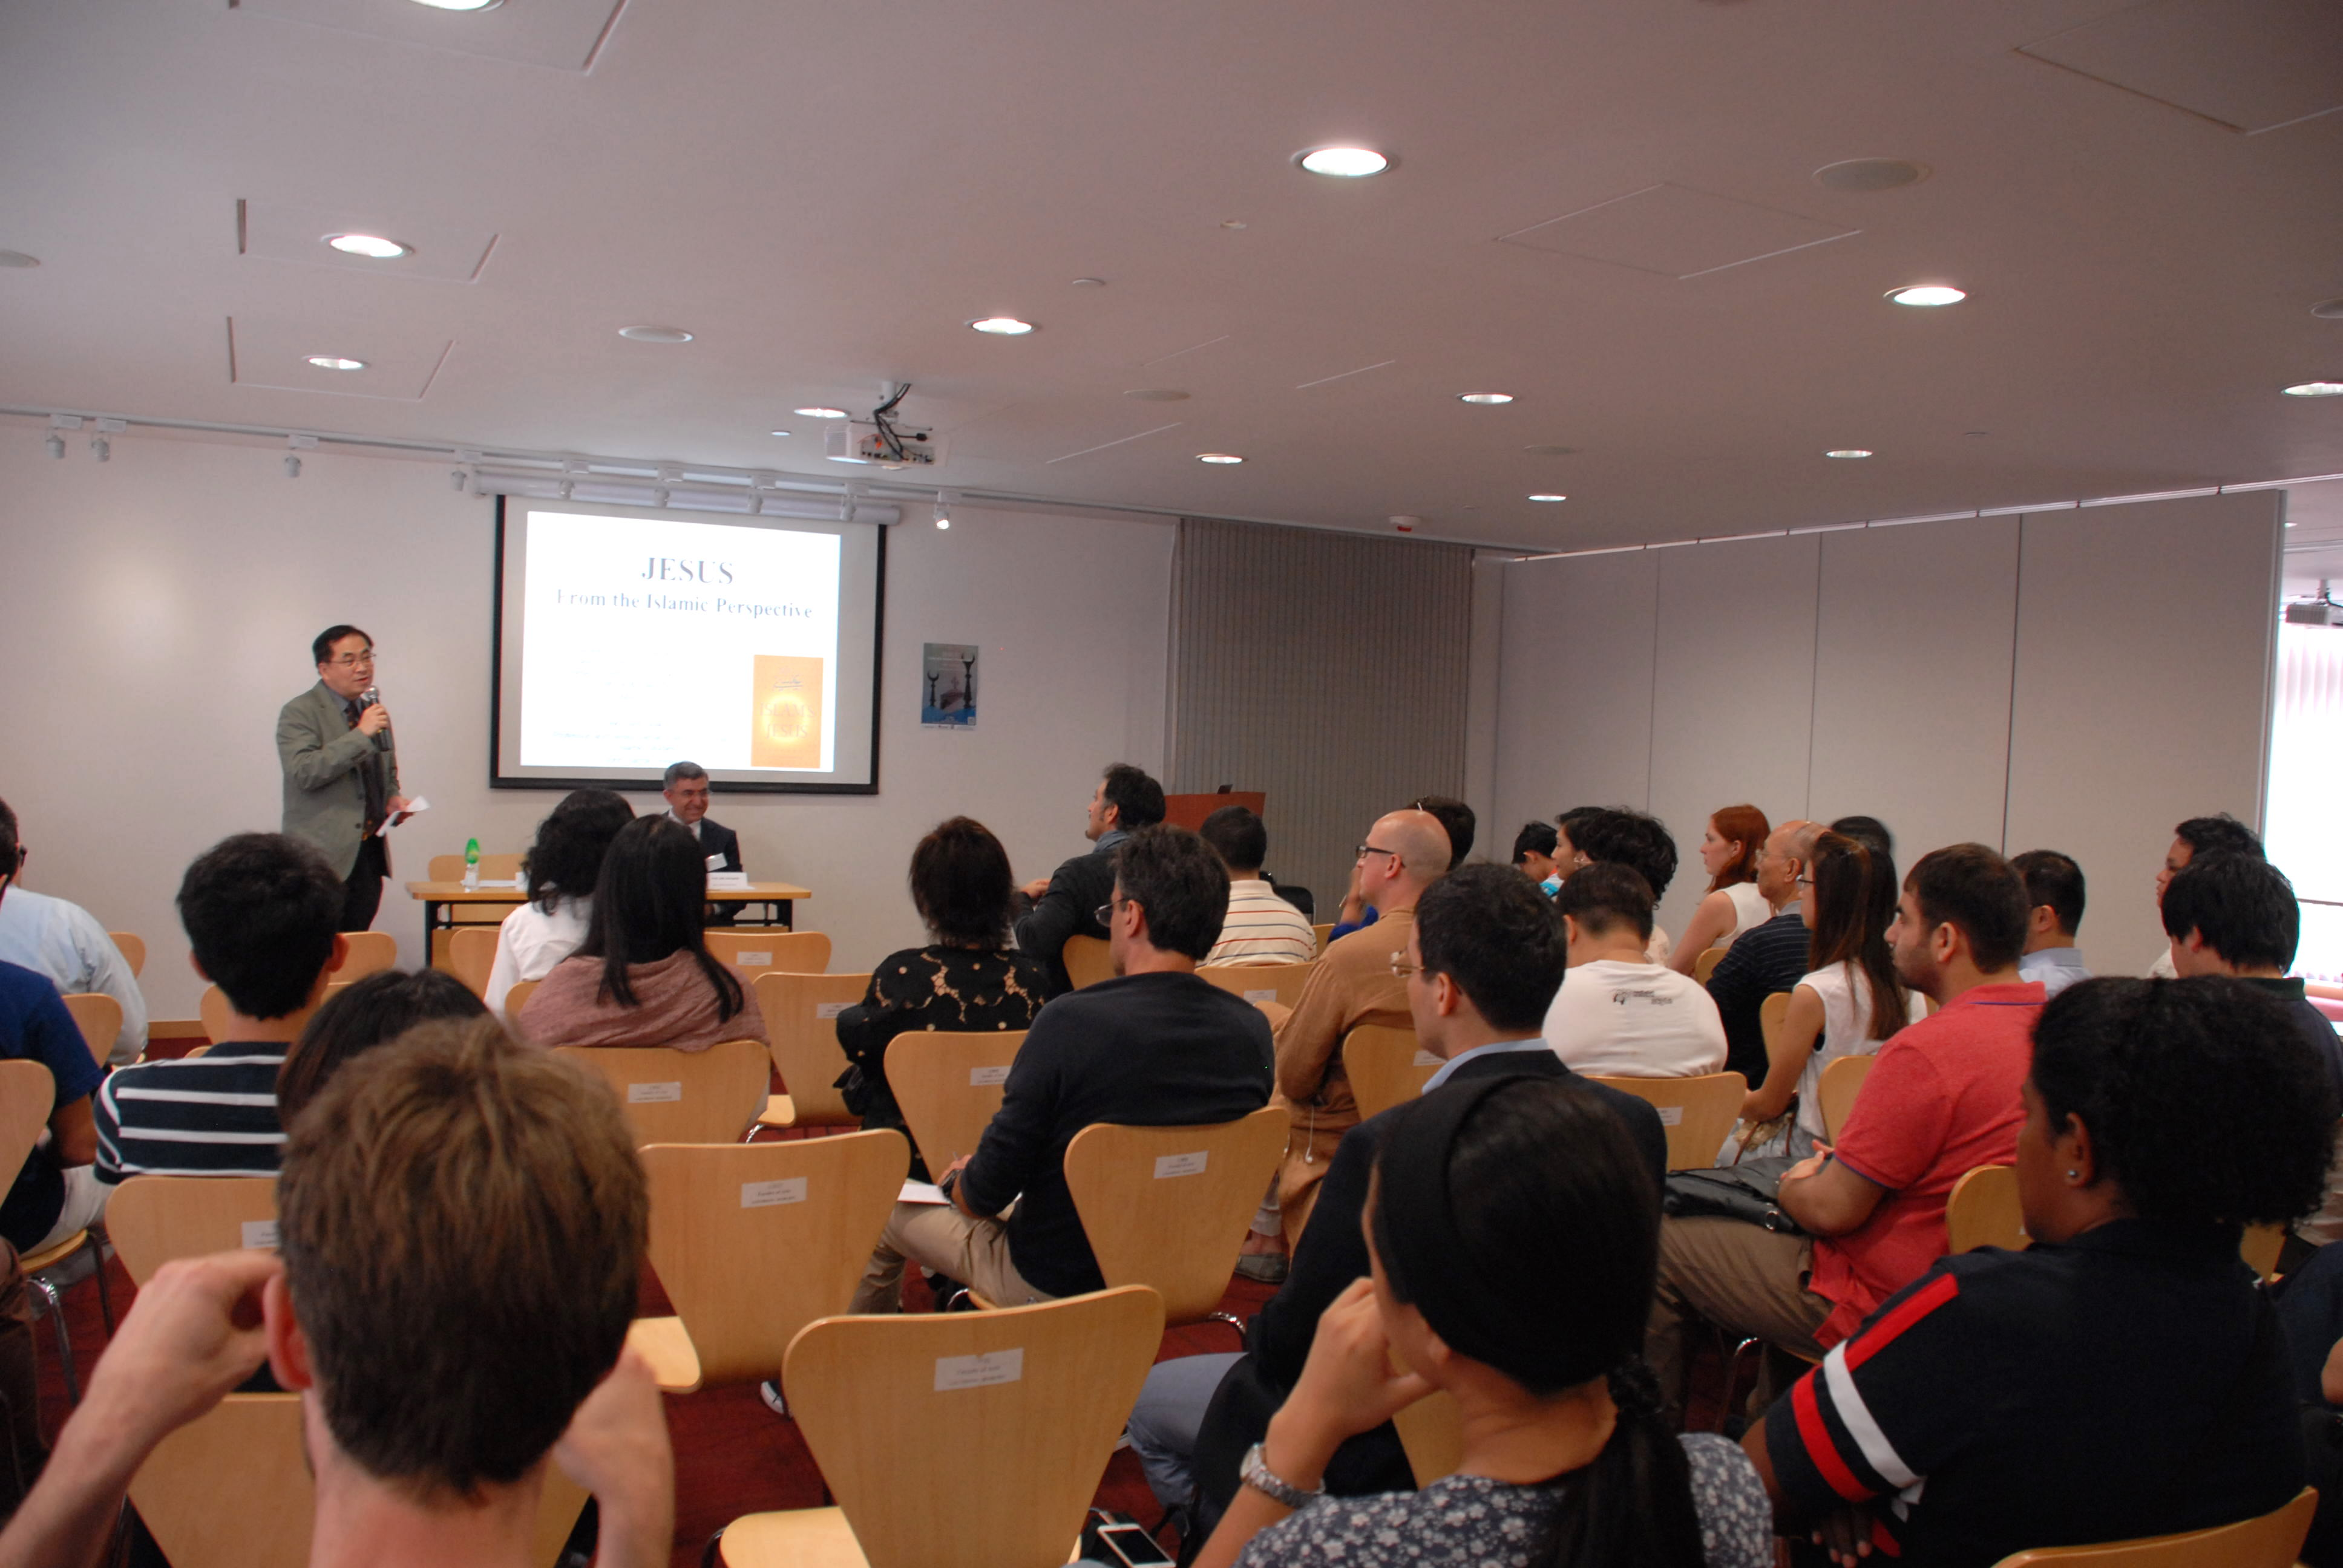 Lecture on Islam's Jesus at CUHK